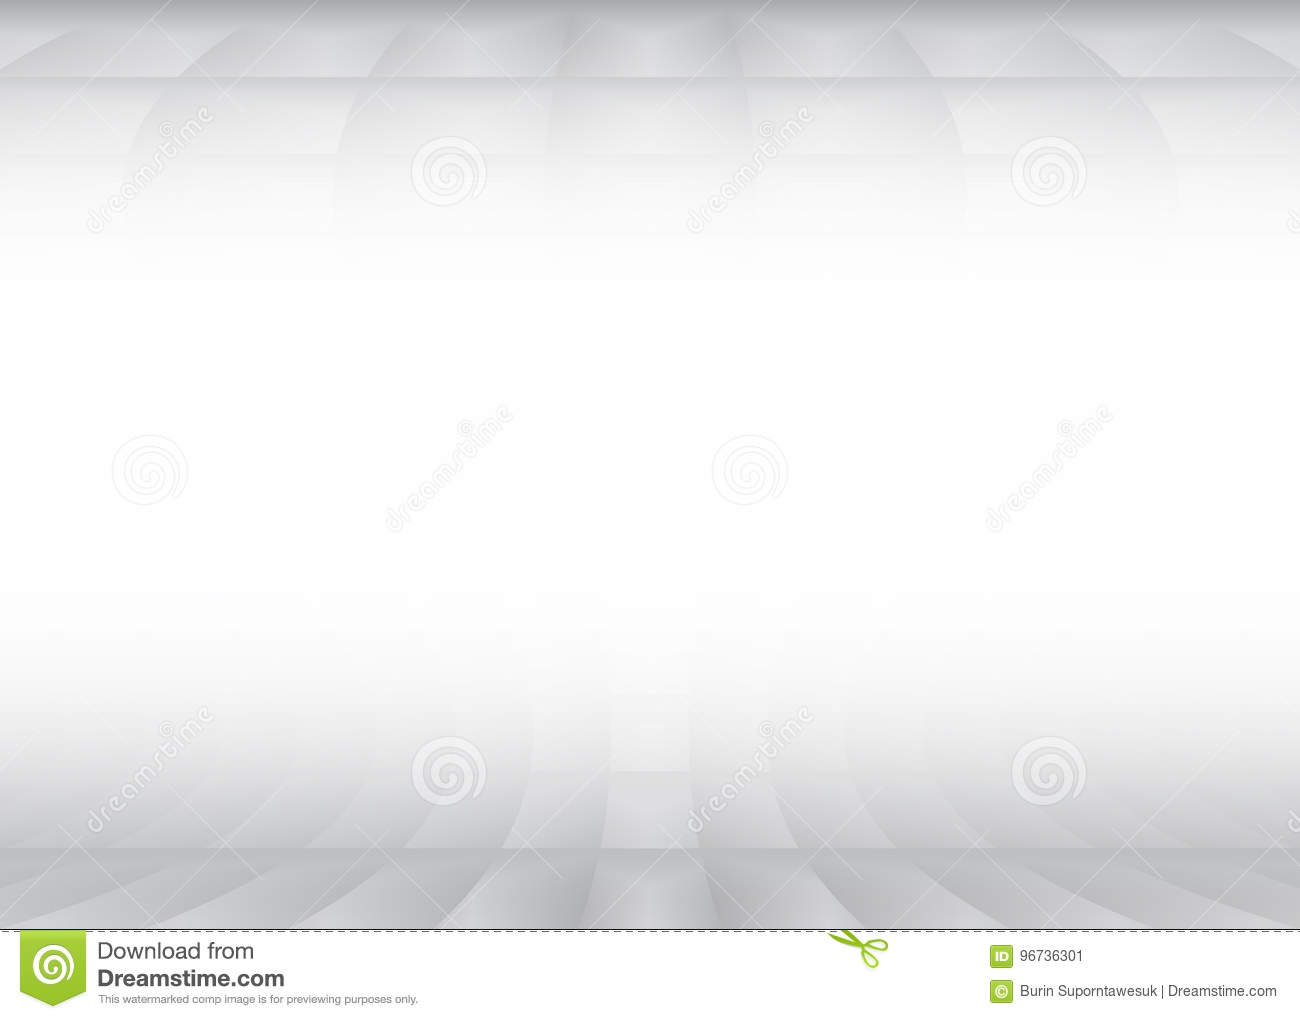 download concept business background square vector illustration of visio stock vector illustration of abstract